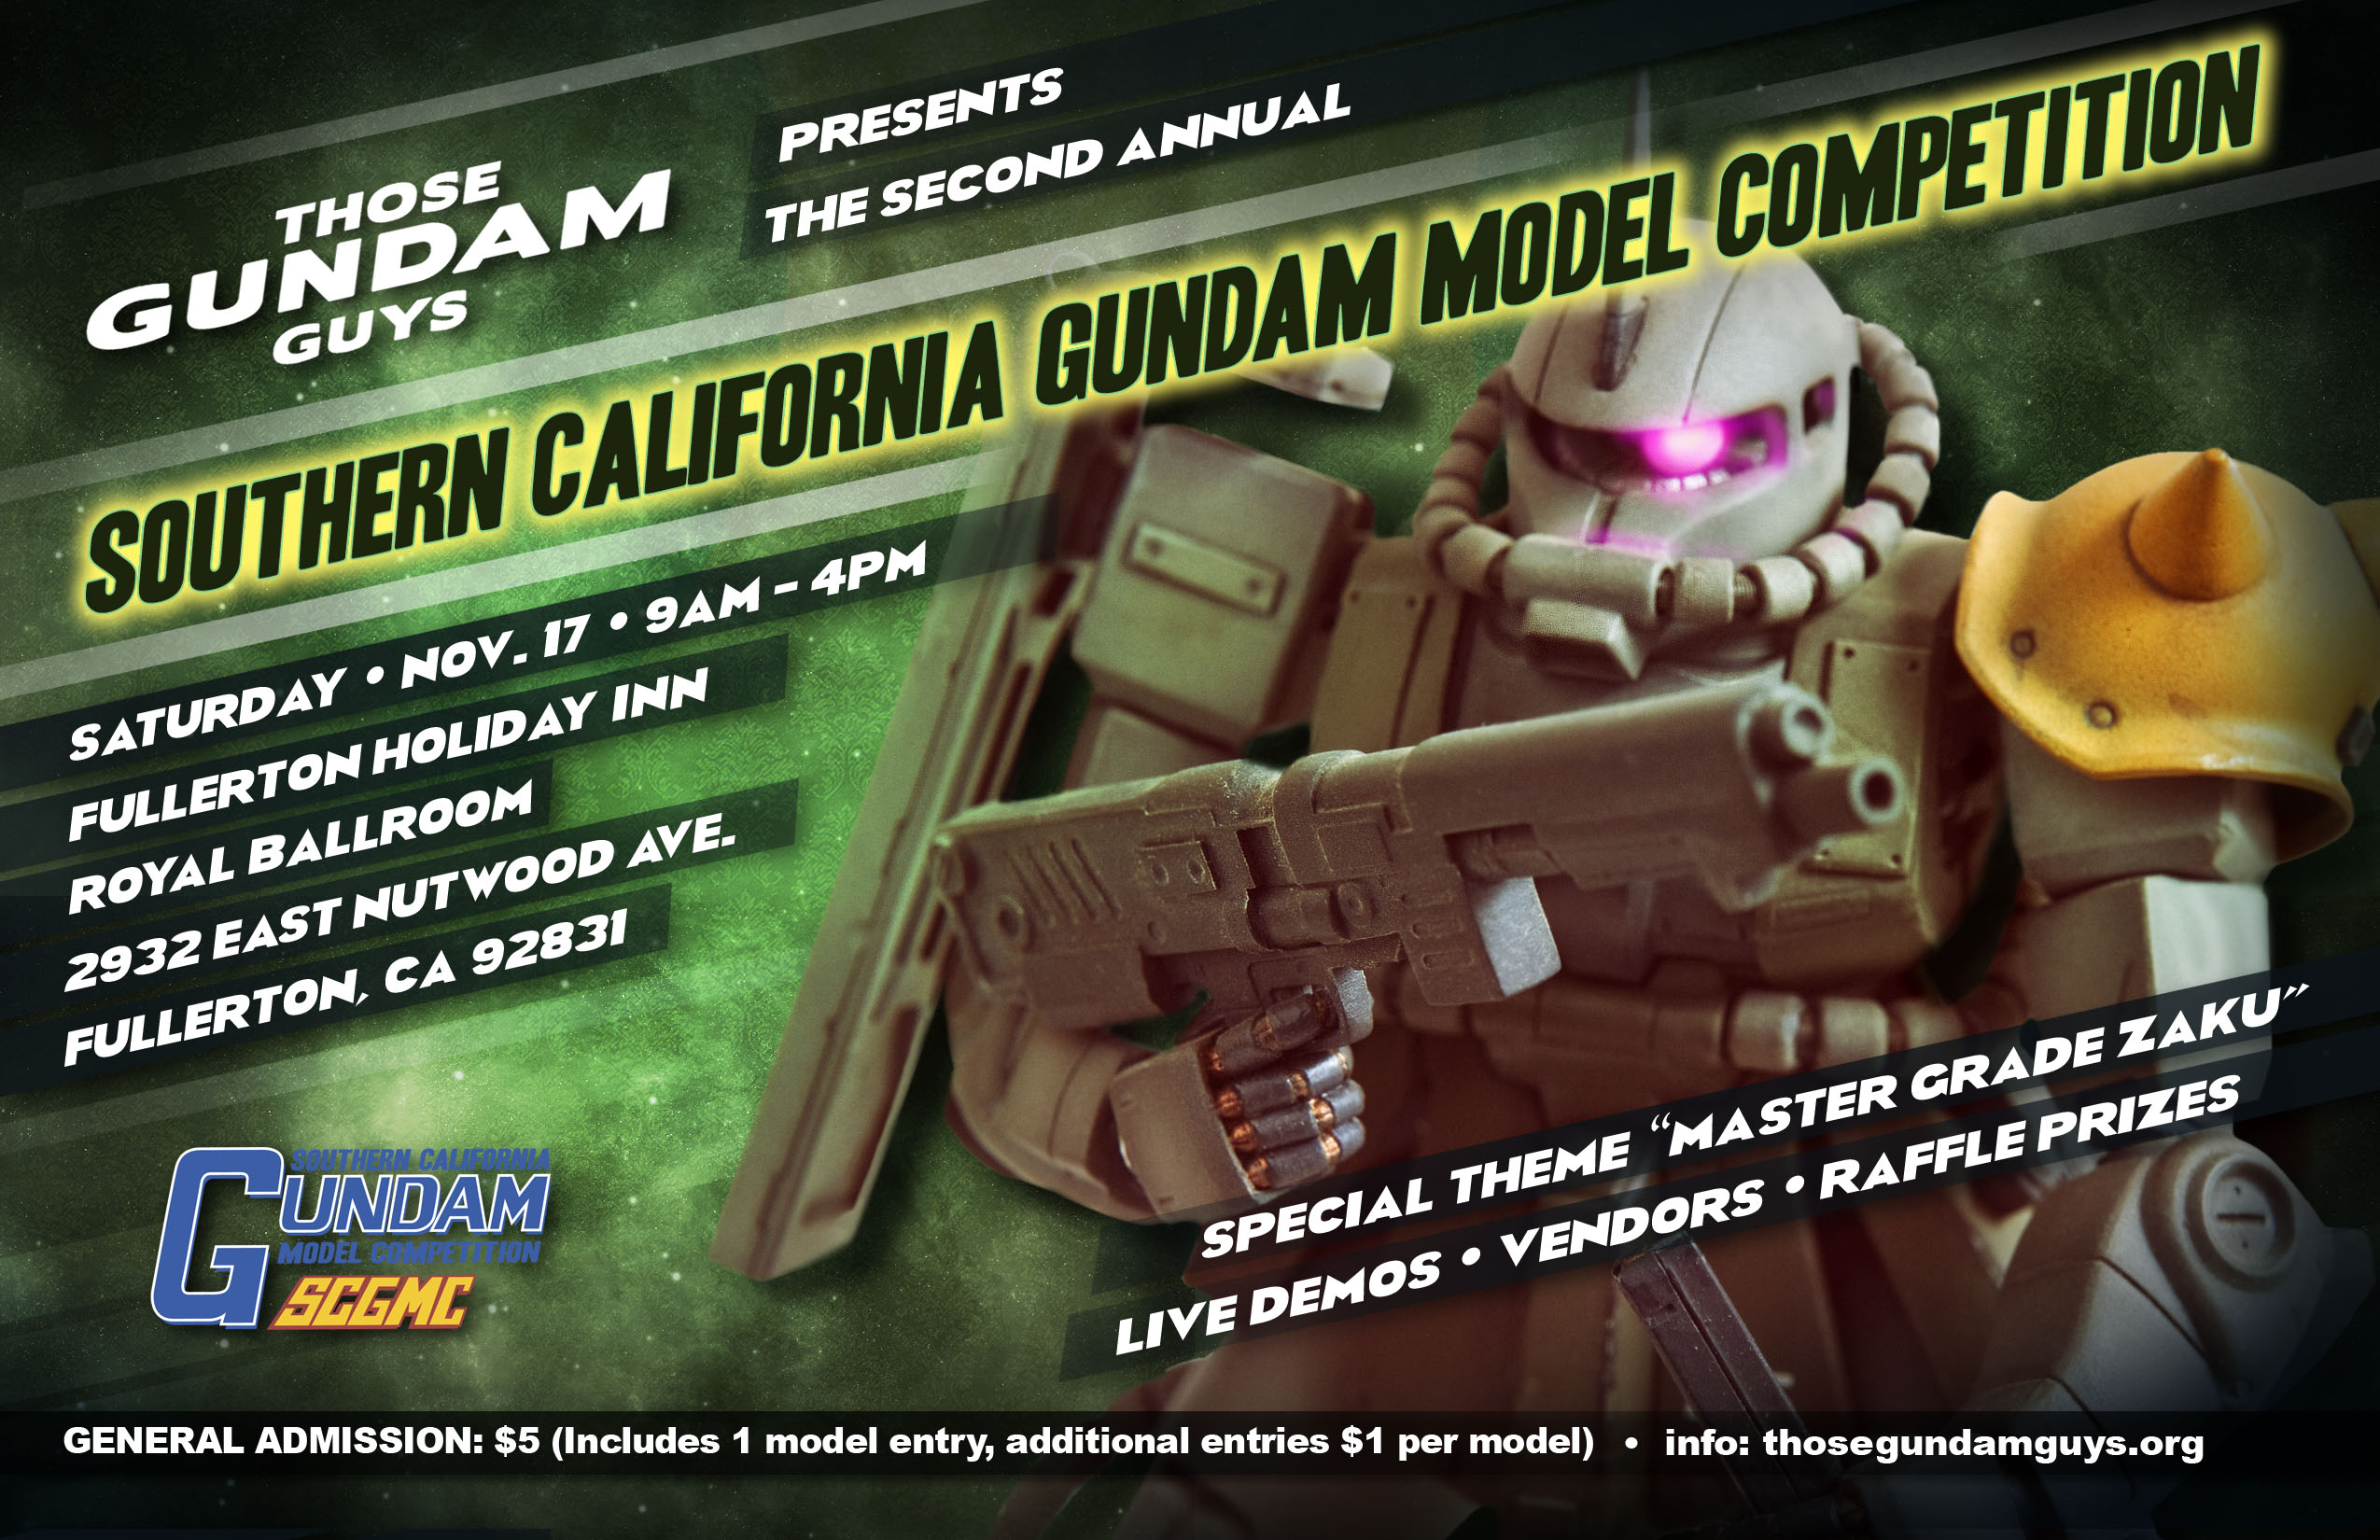 2nd Annual Southern California Gundam Model Competition (SCGMC part deux!)